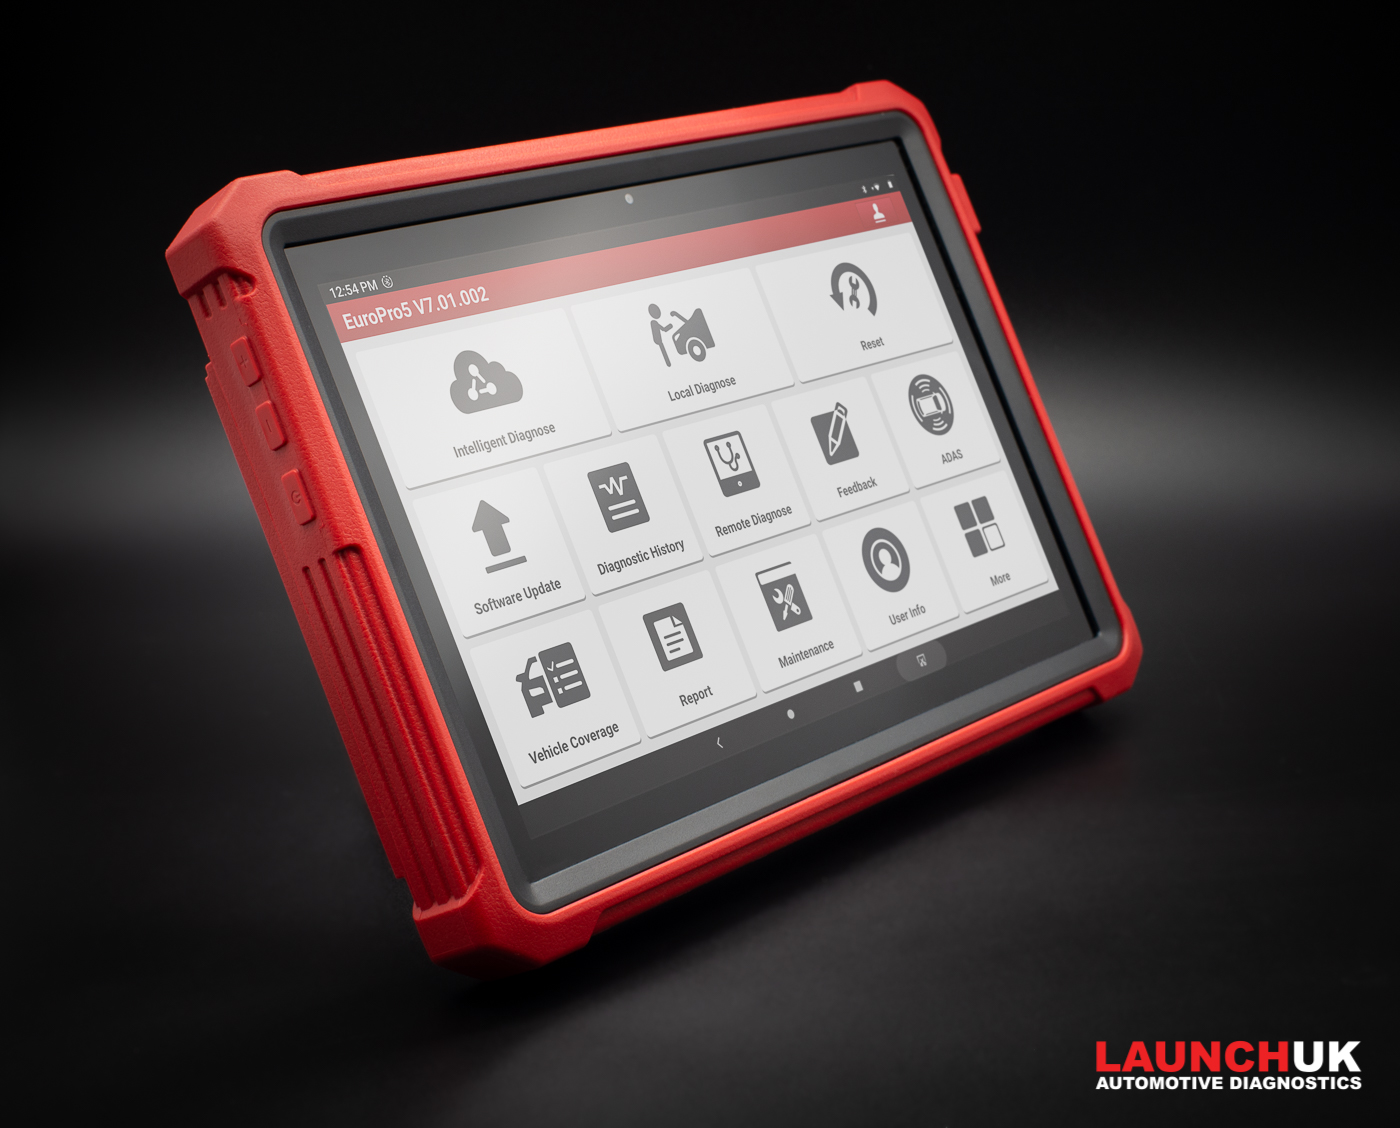 Launch Pro 5 designed to speed up diagnostics